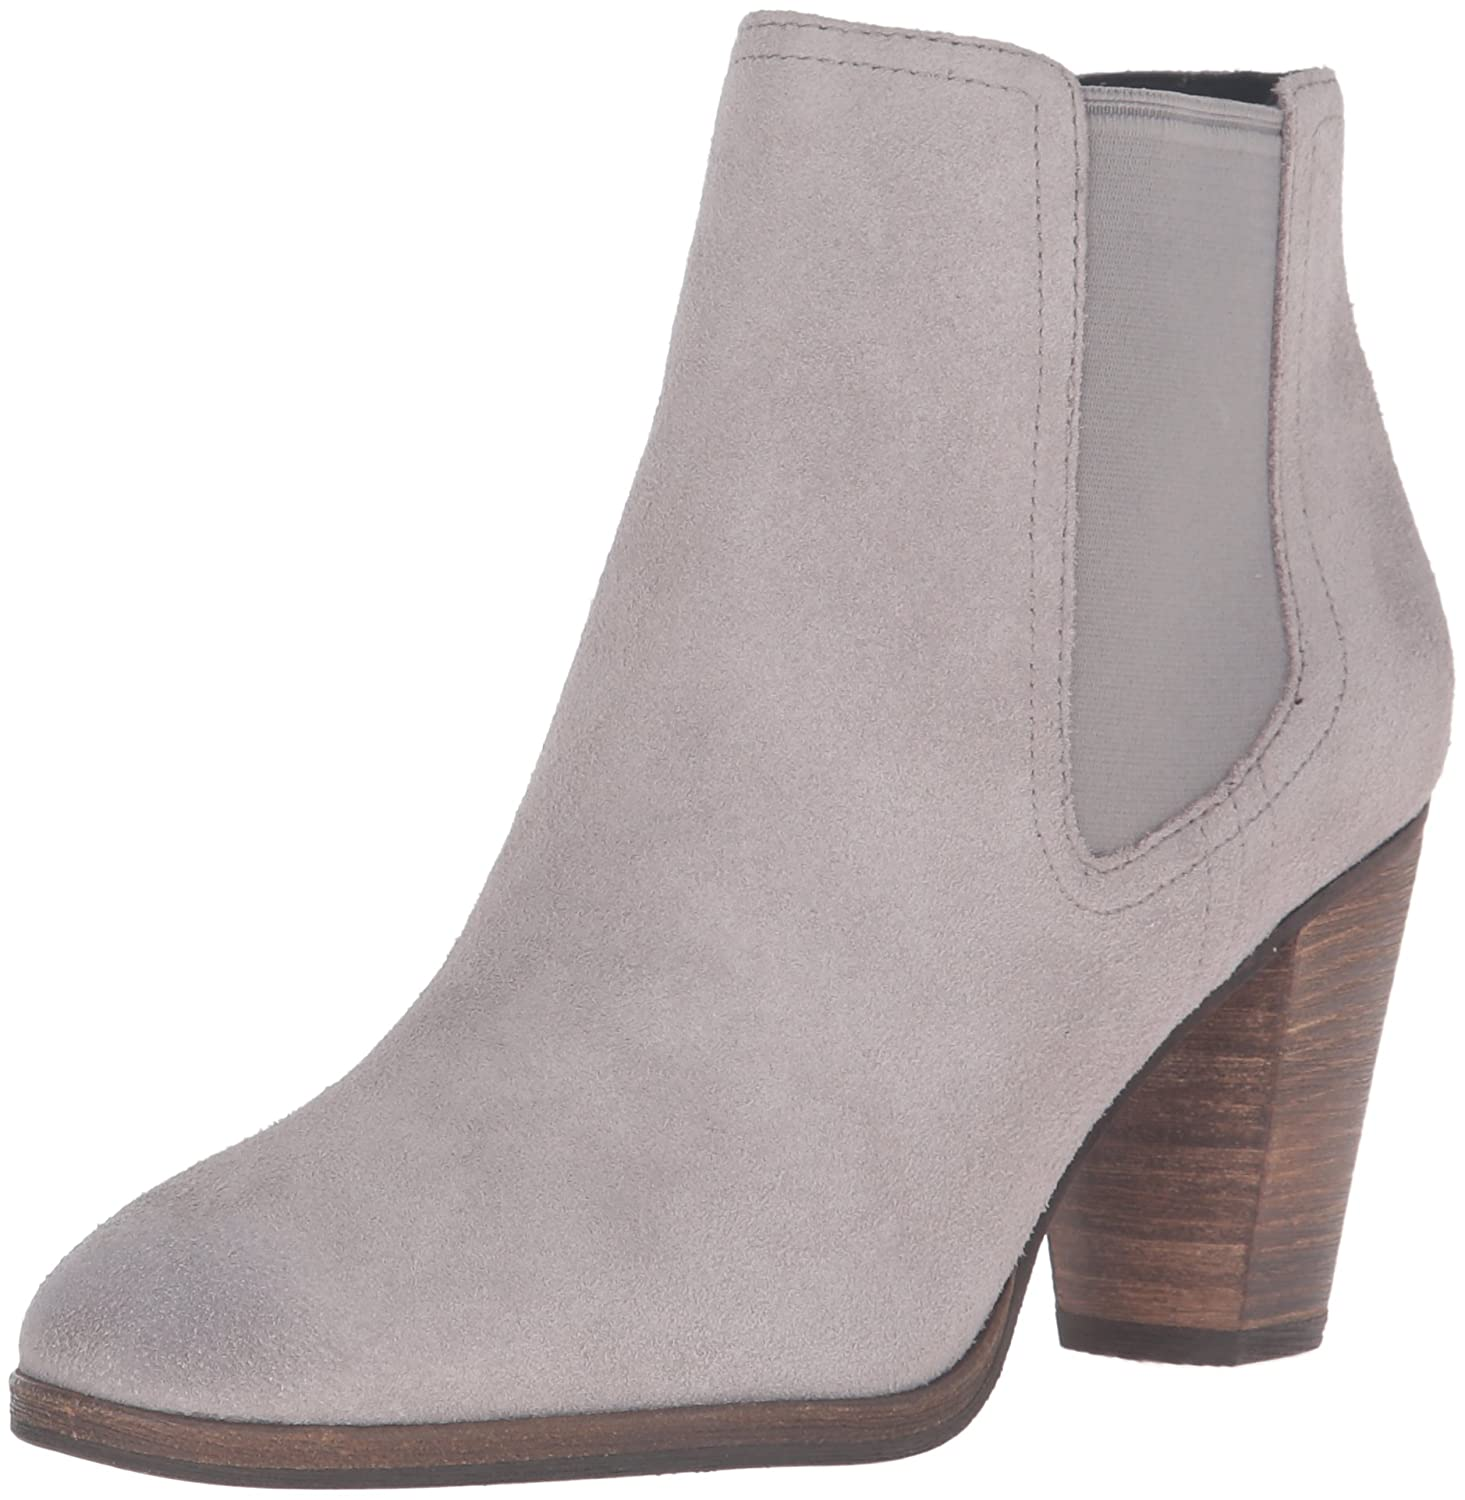 Cole Haan Women's Hayes Gore Ankle Bootie B01FX5AAY2 11 B(M) US|Ironstone Suede